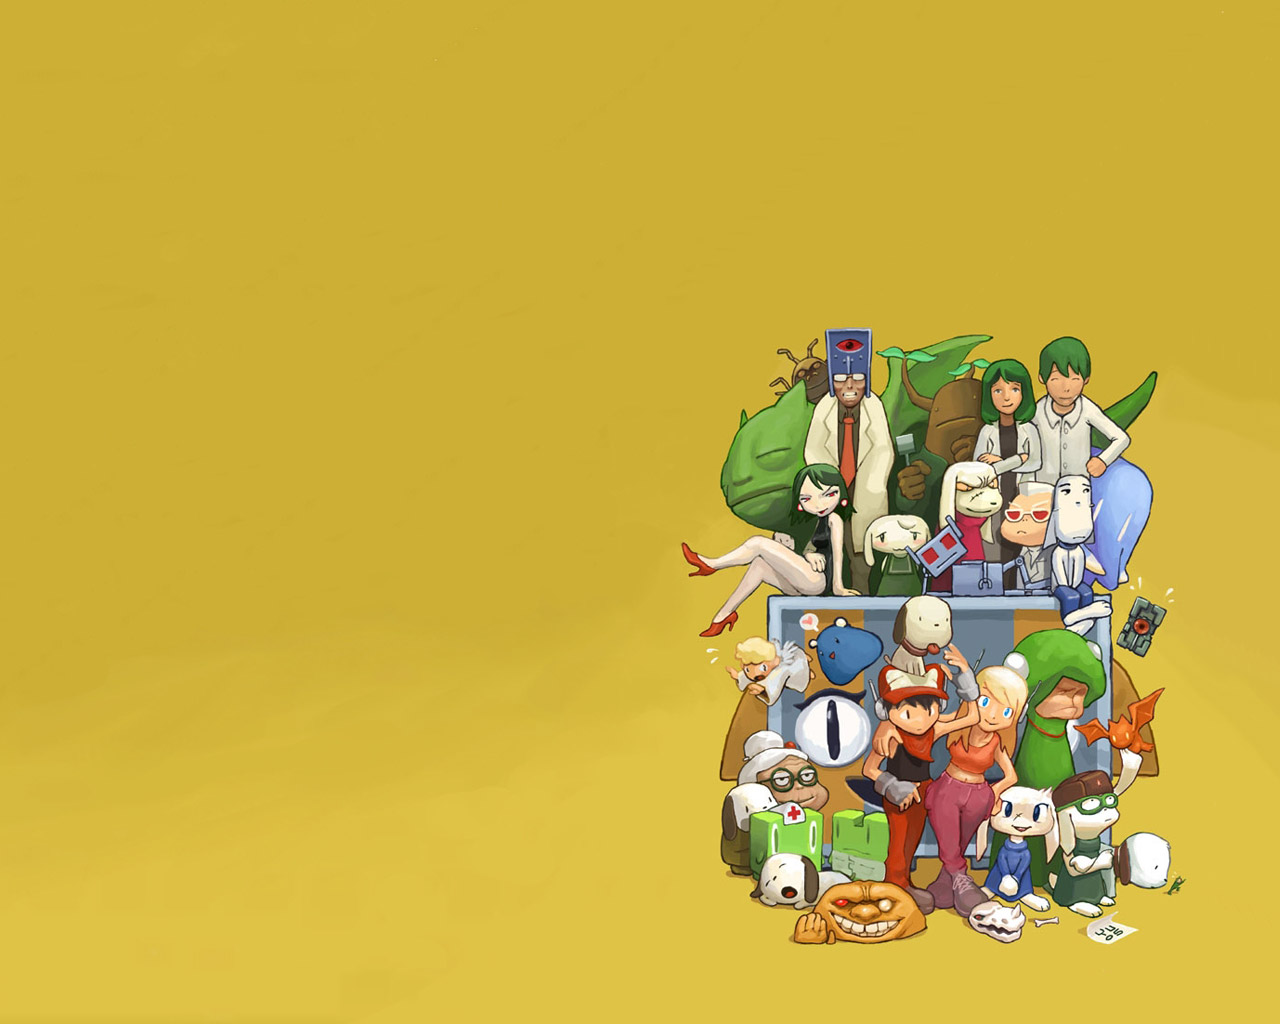 Free Cave Story Wallpaper in 1280x1024